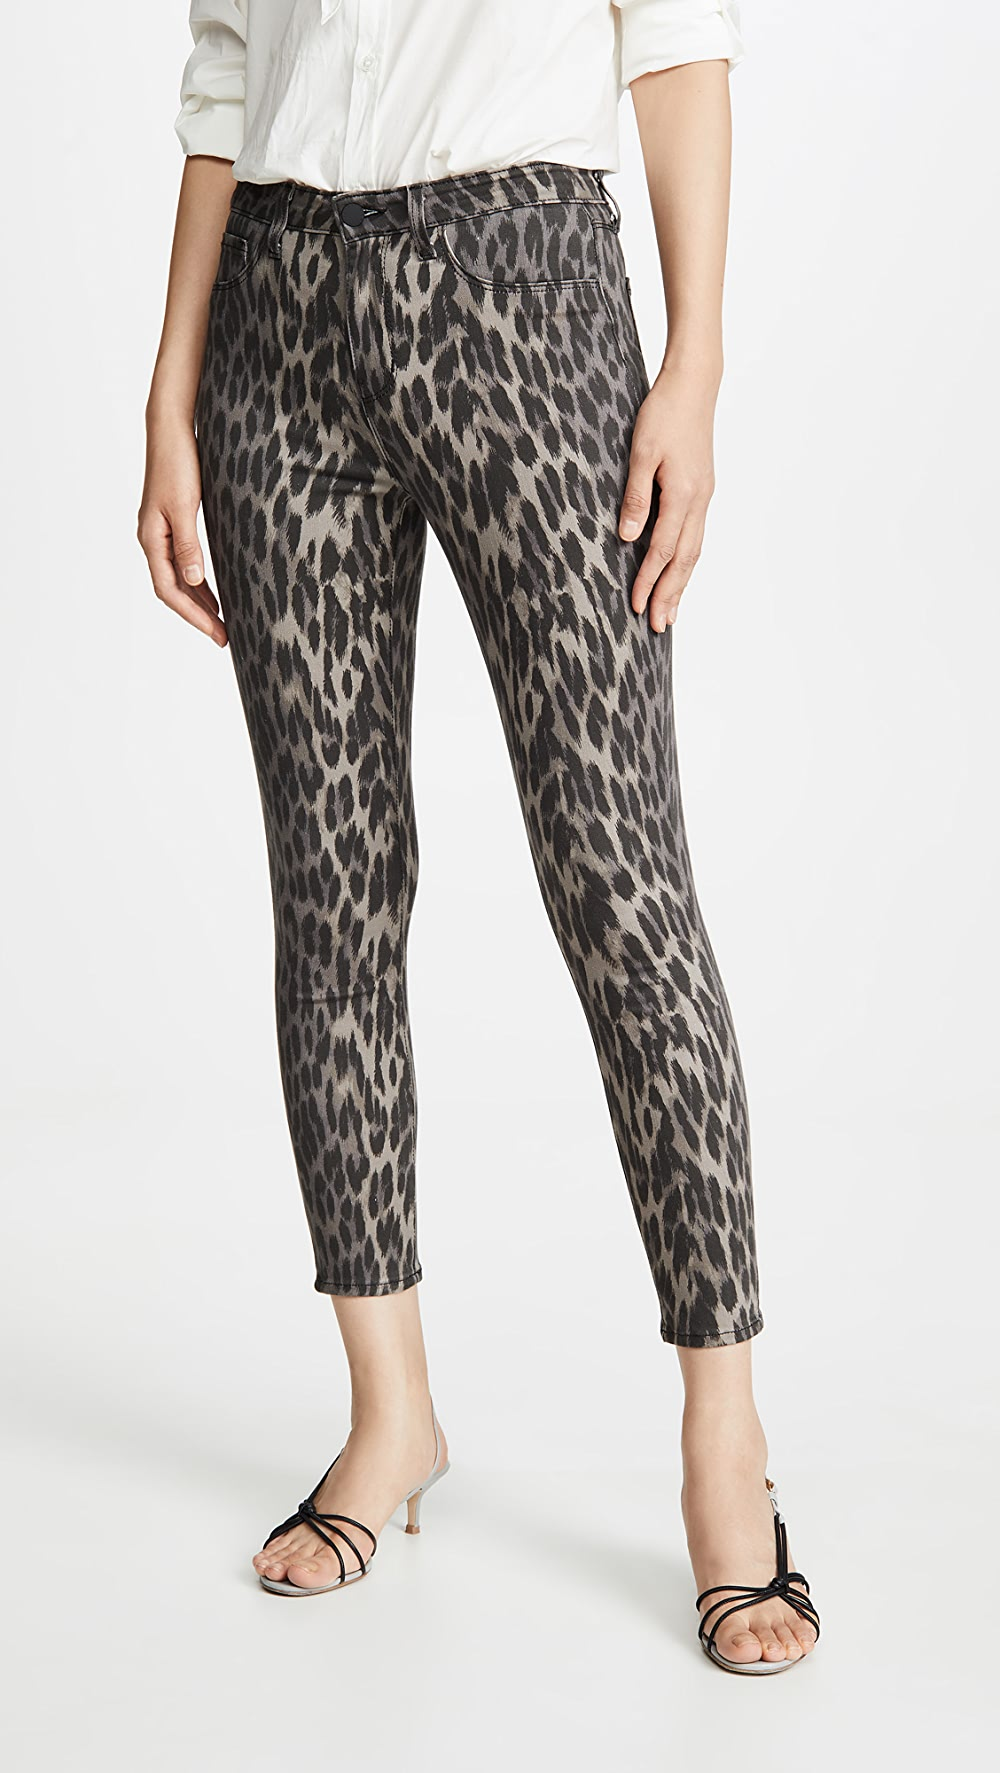 Qualified L'agence - Margot High Rise Skinny Jeans To Assure Years Of Trouble-Free Service